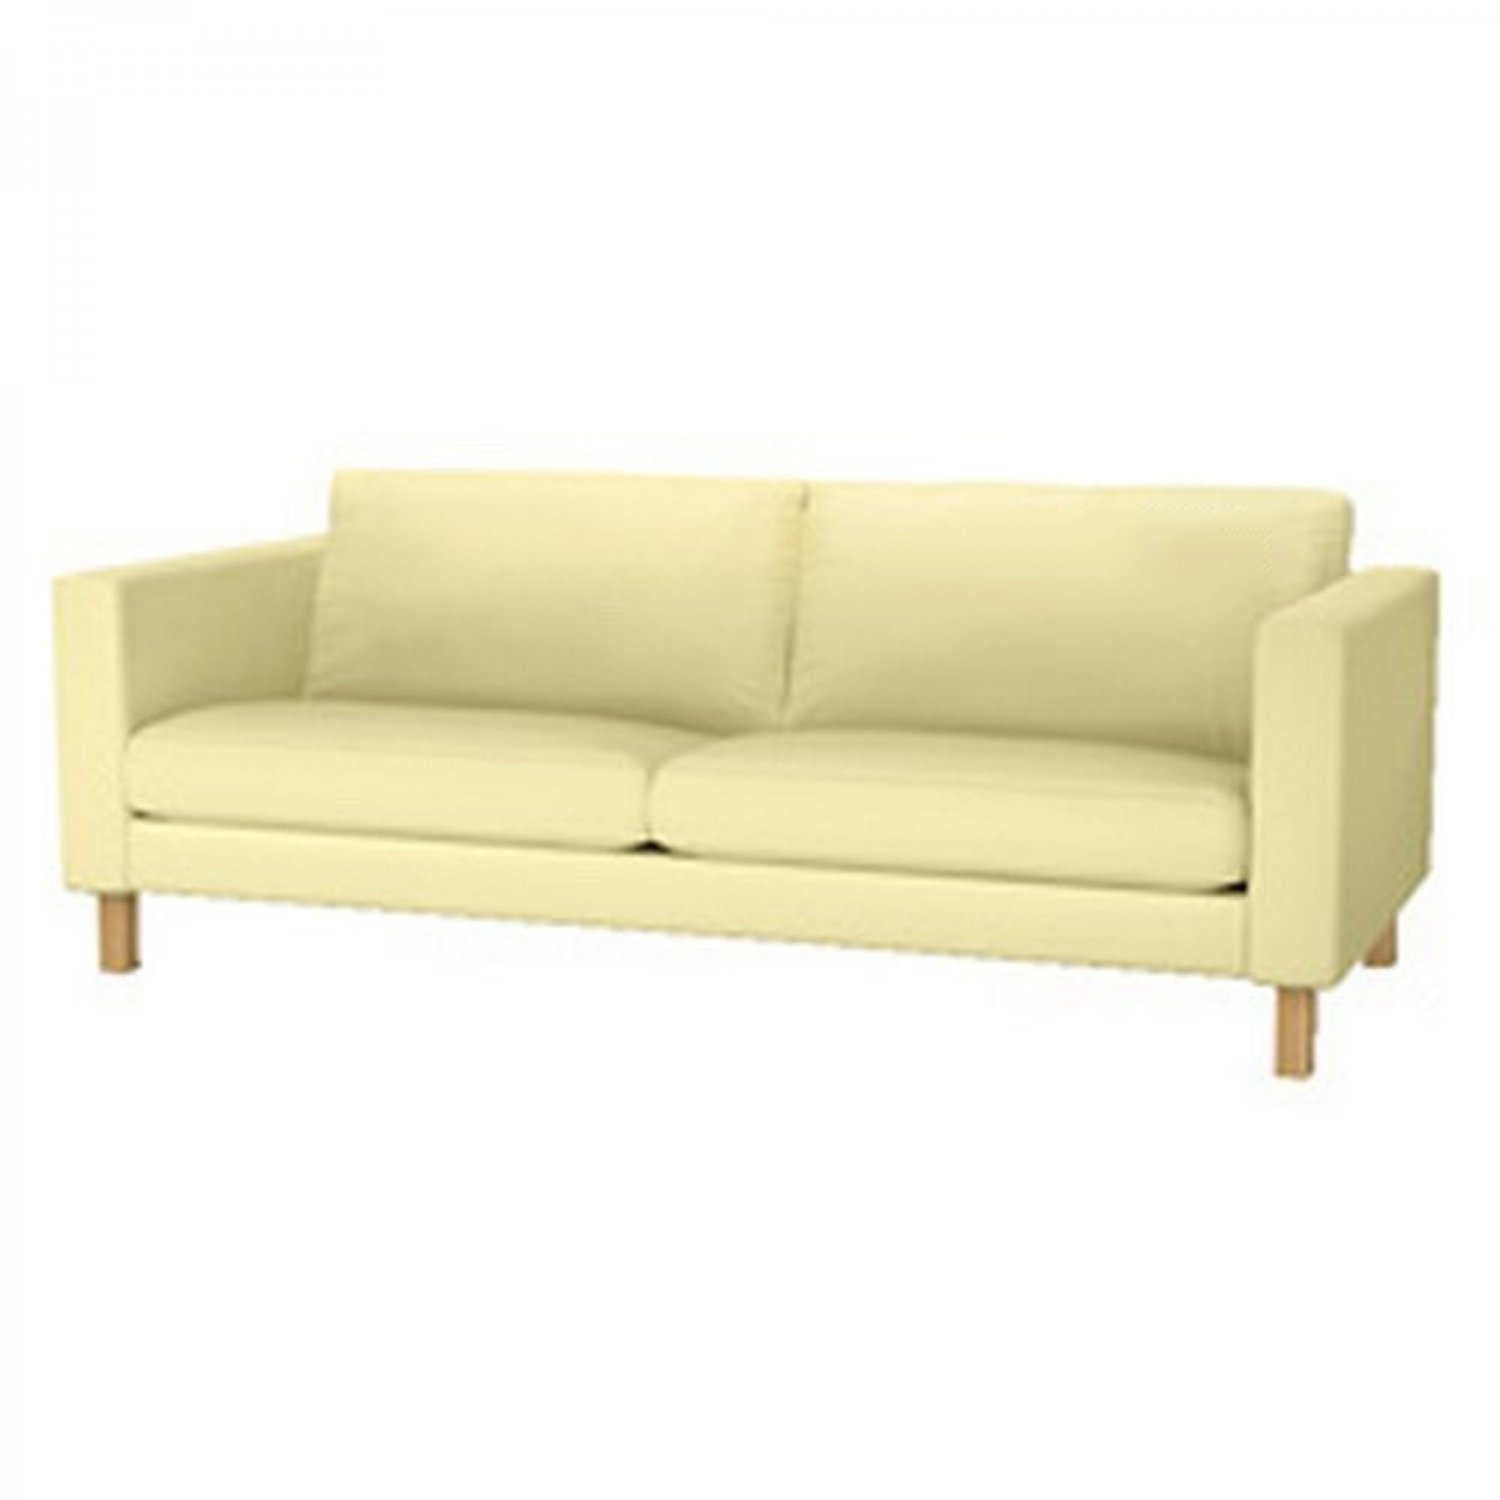 ikea karlstad sofa slipcover cover sivik light yellow 3 seat mid century modern. Black Bedroom Furniture Sets. Home Design Ideas